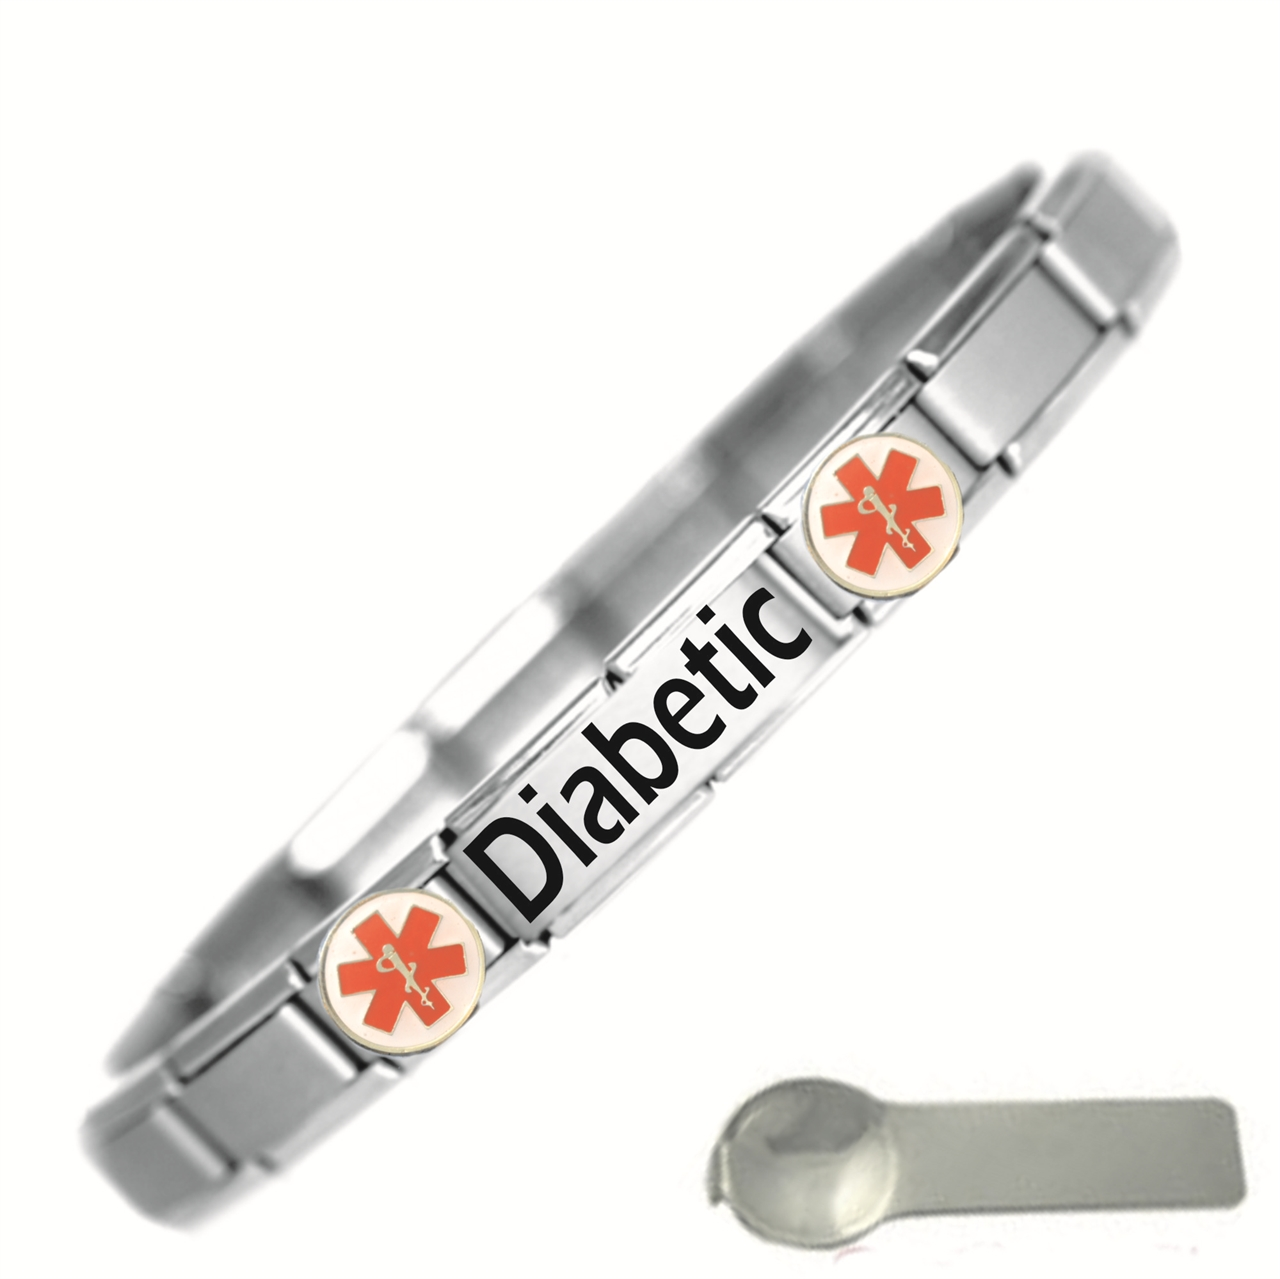 Should asthmatics wear medical alert bracelets? - Yahoo! Answers